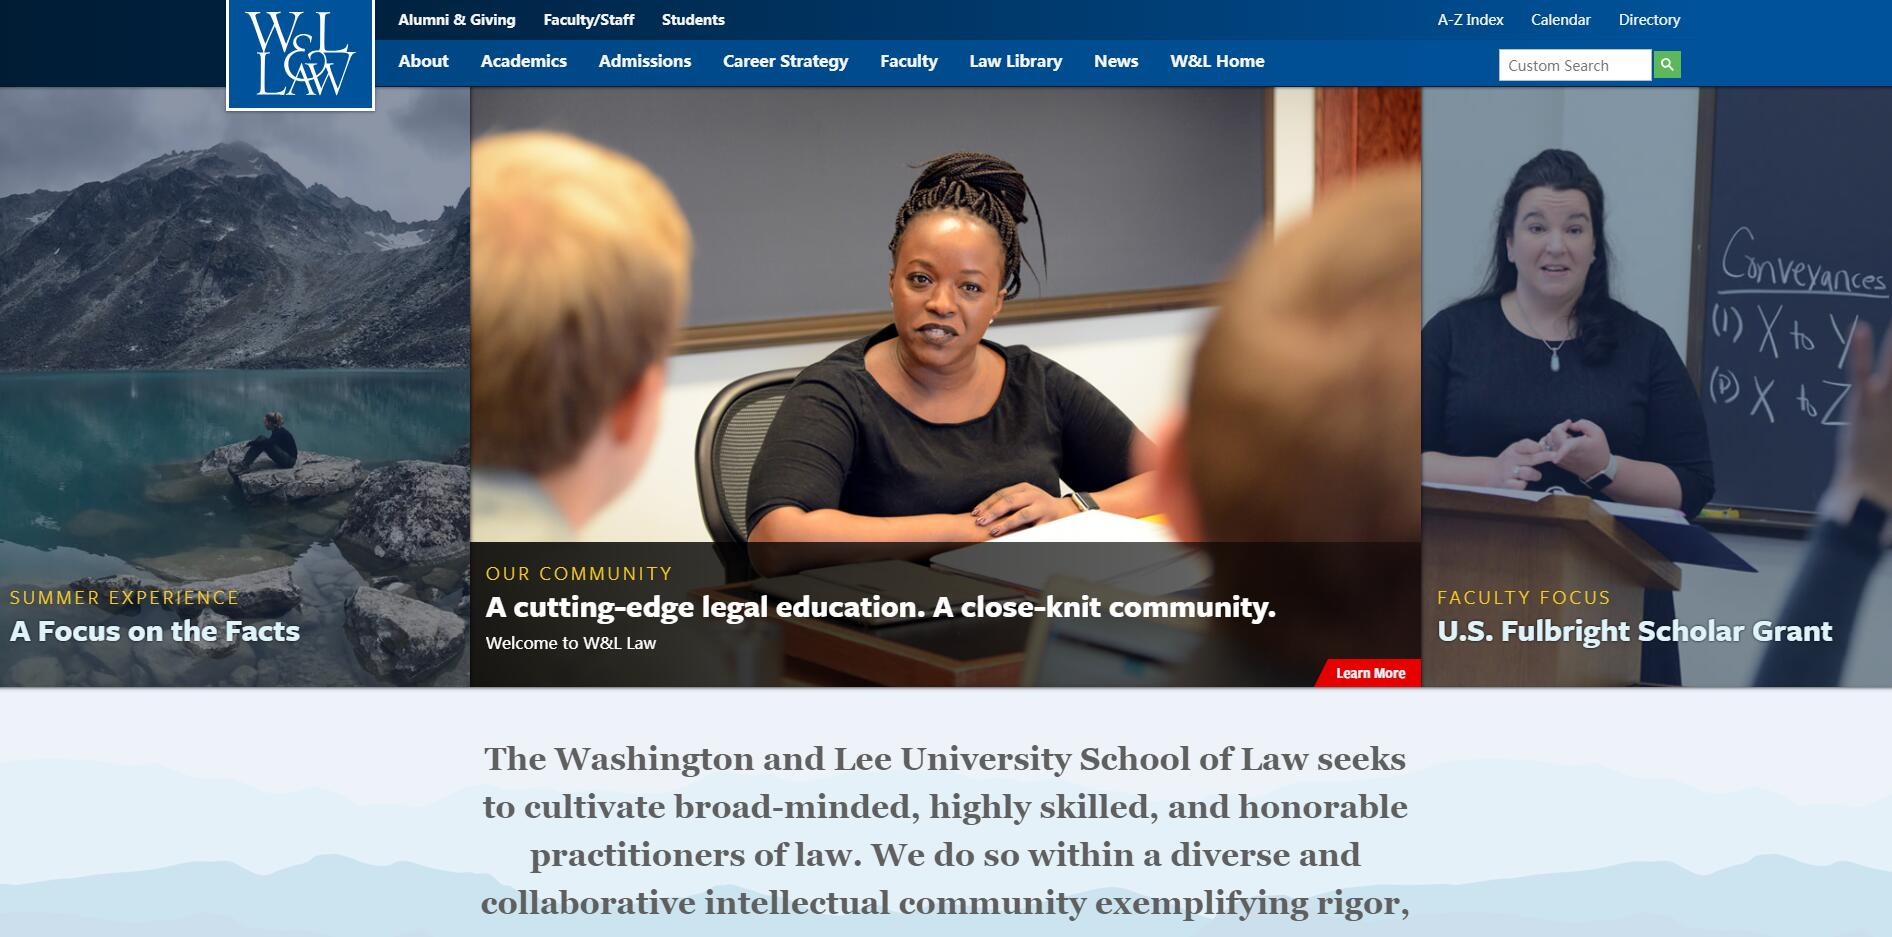 The School of Law at Washington and Lee University